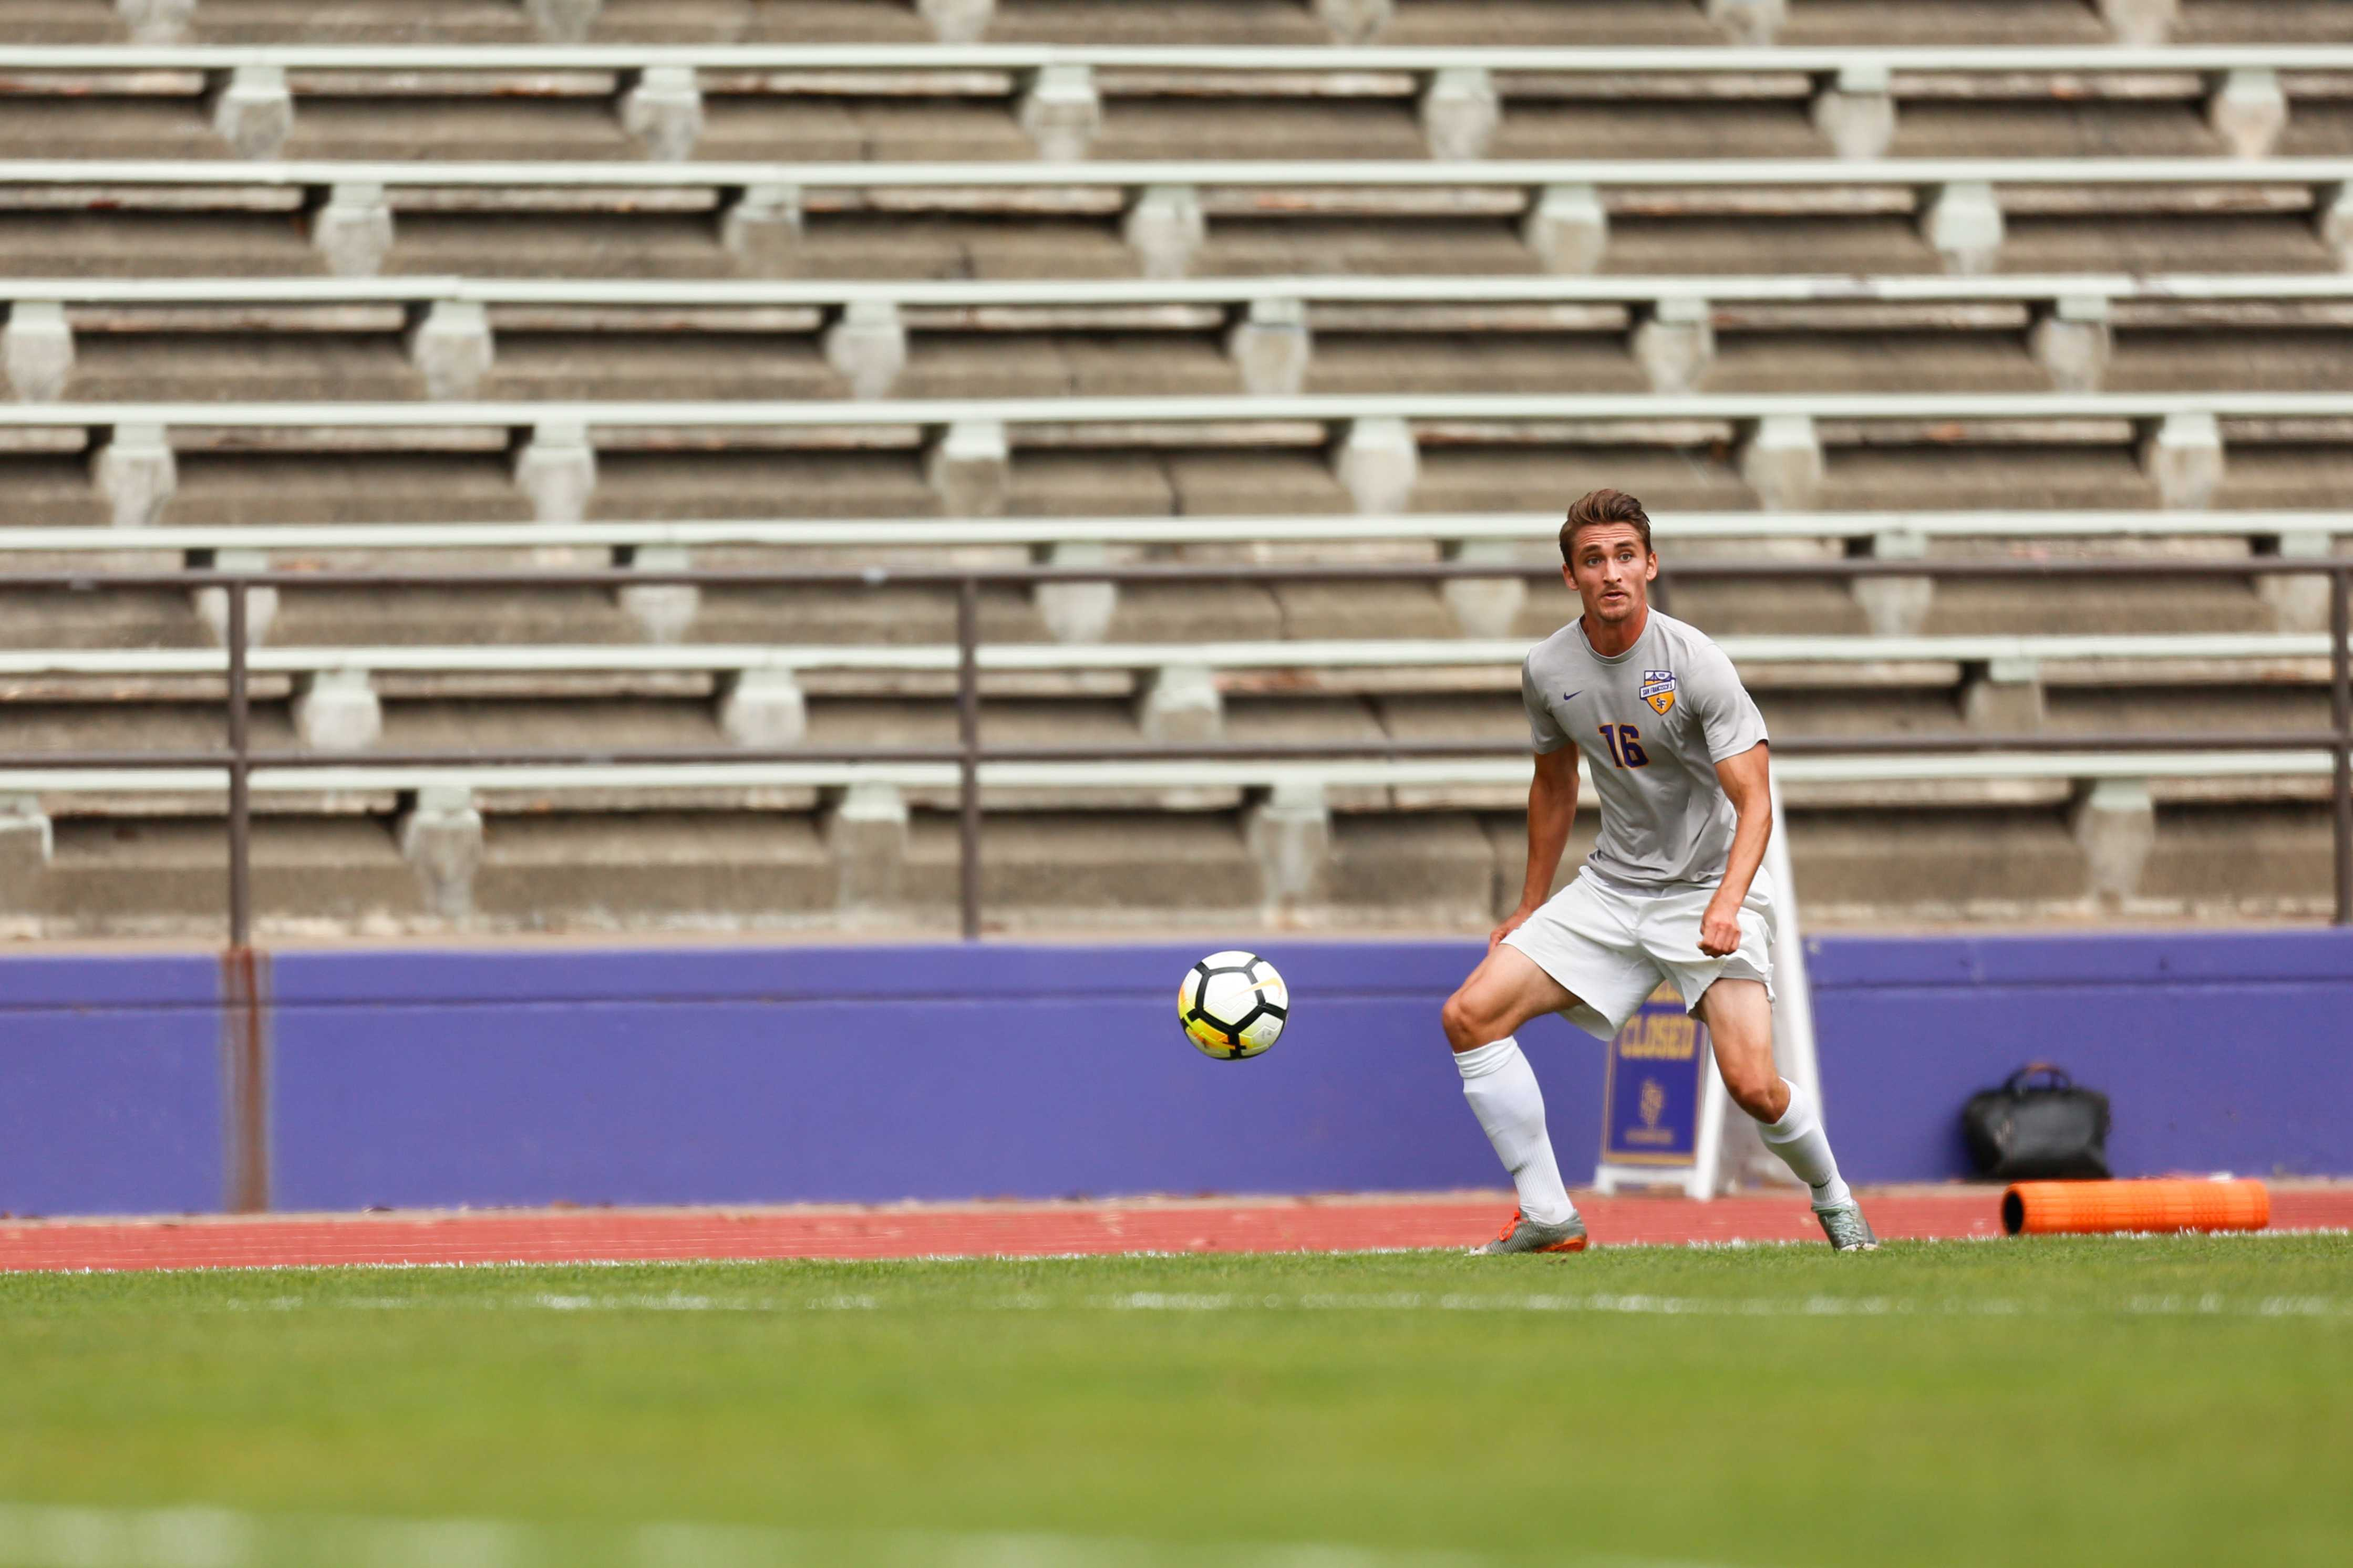 Men's soccer looks to finish strong with final two games of the regular season